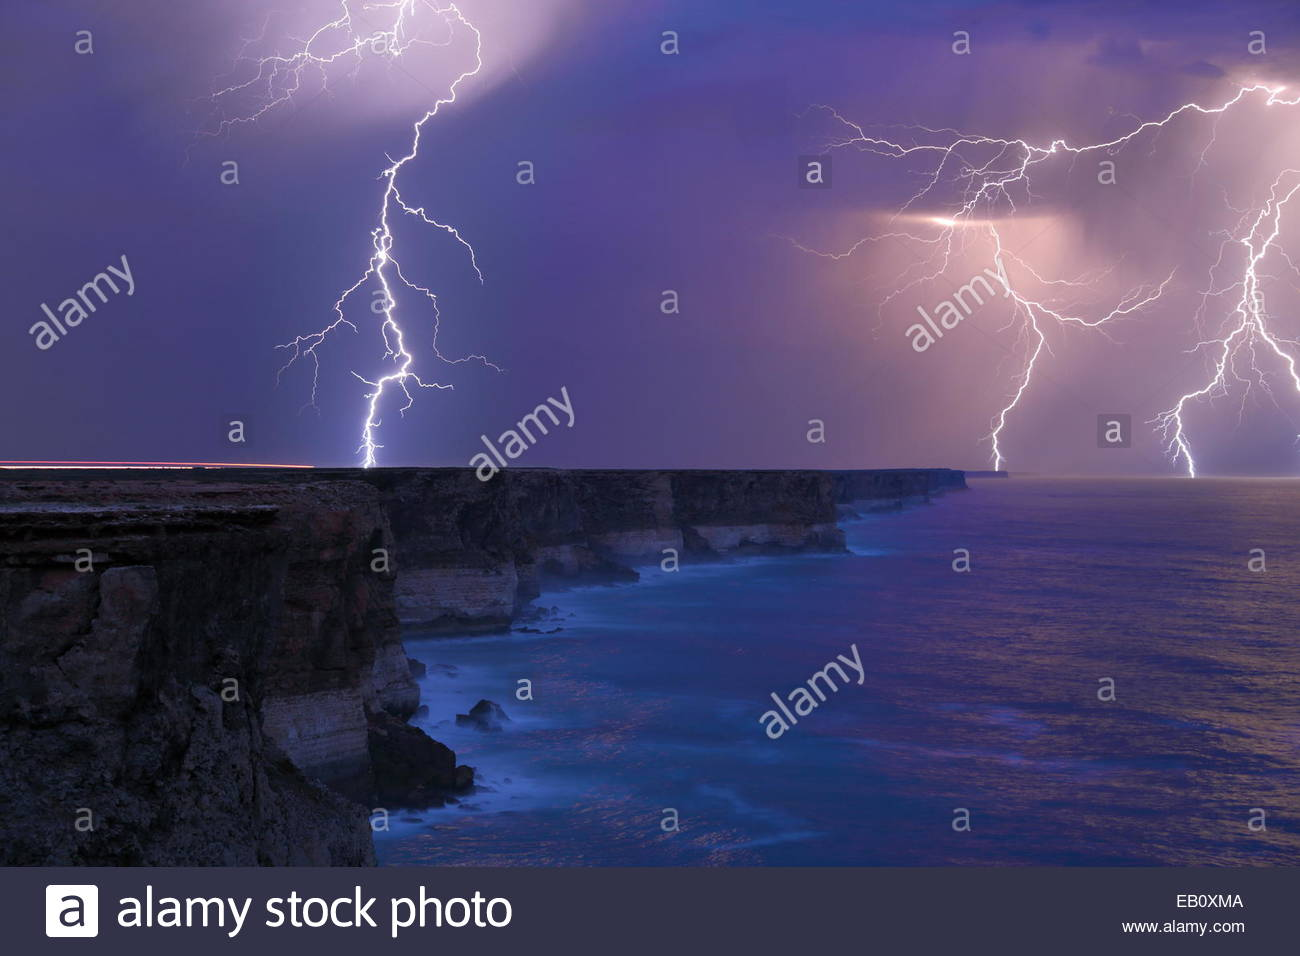 Lightning storm over the arid Nullarbor and the Great Australian Bight in South Australia. - Stock Image